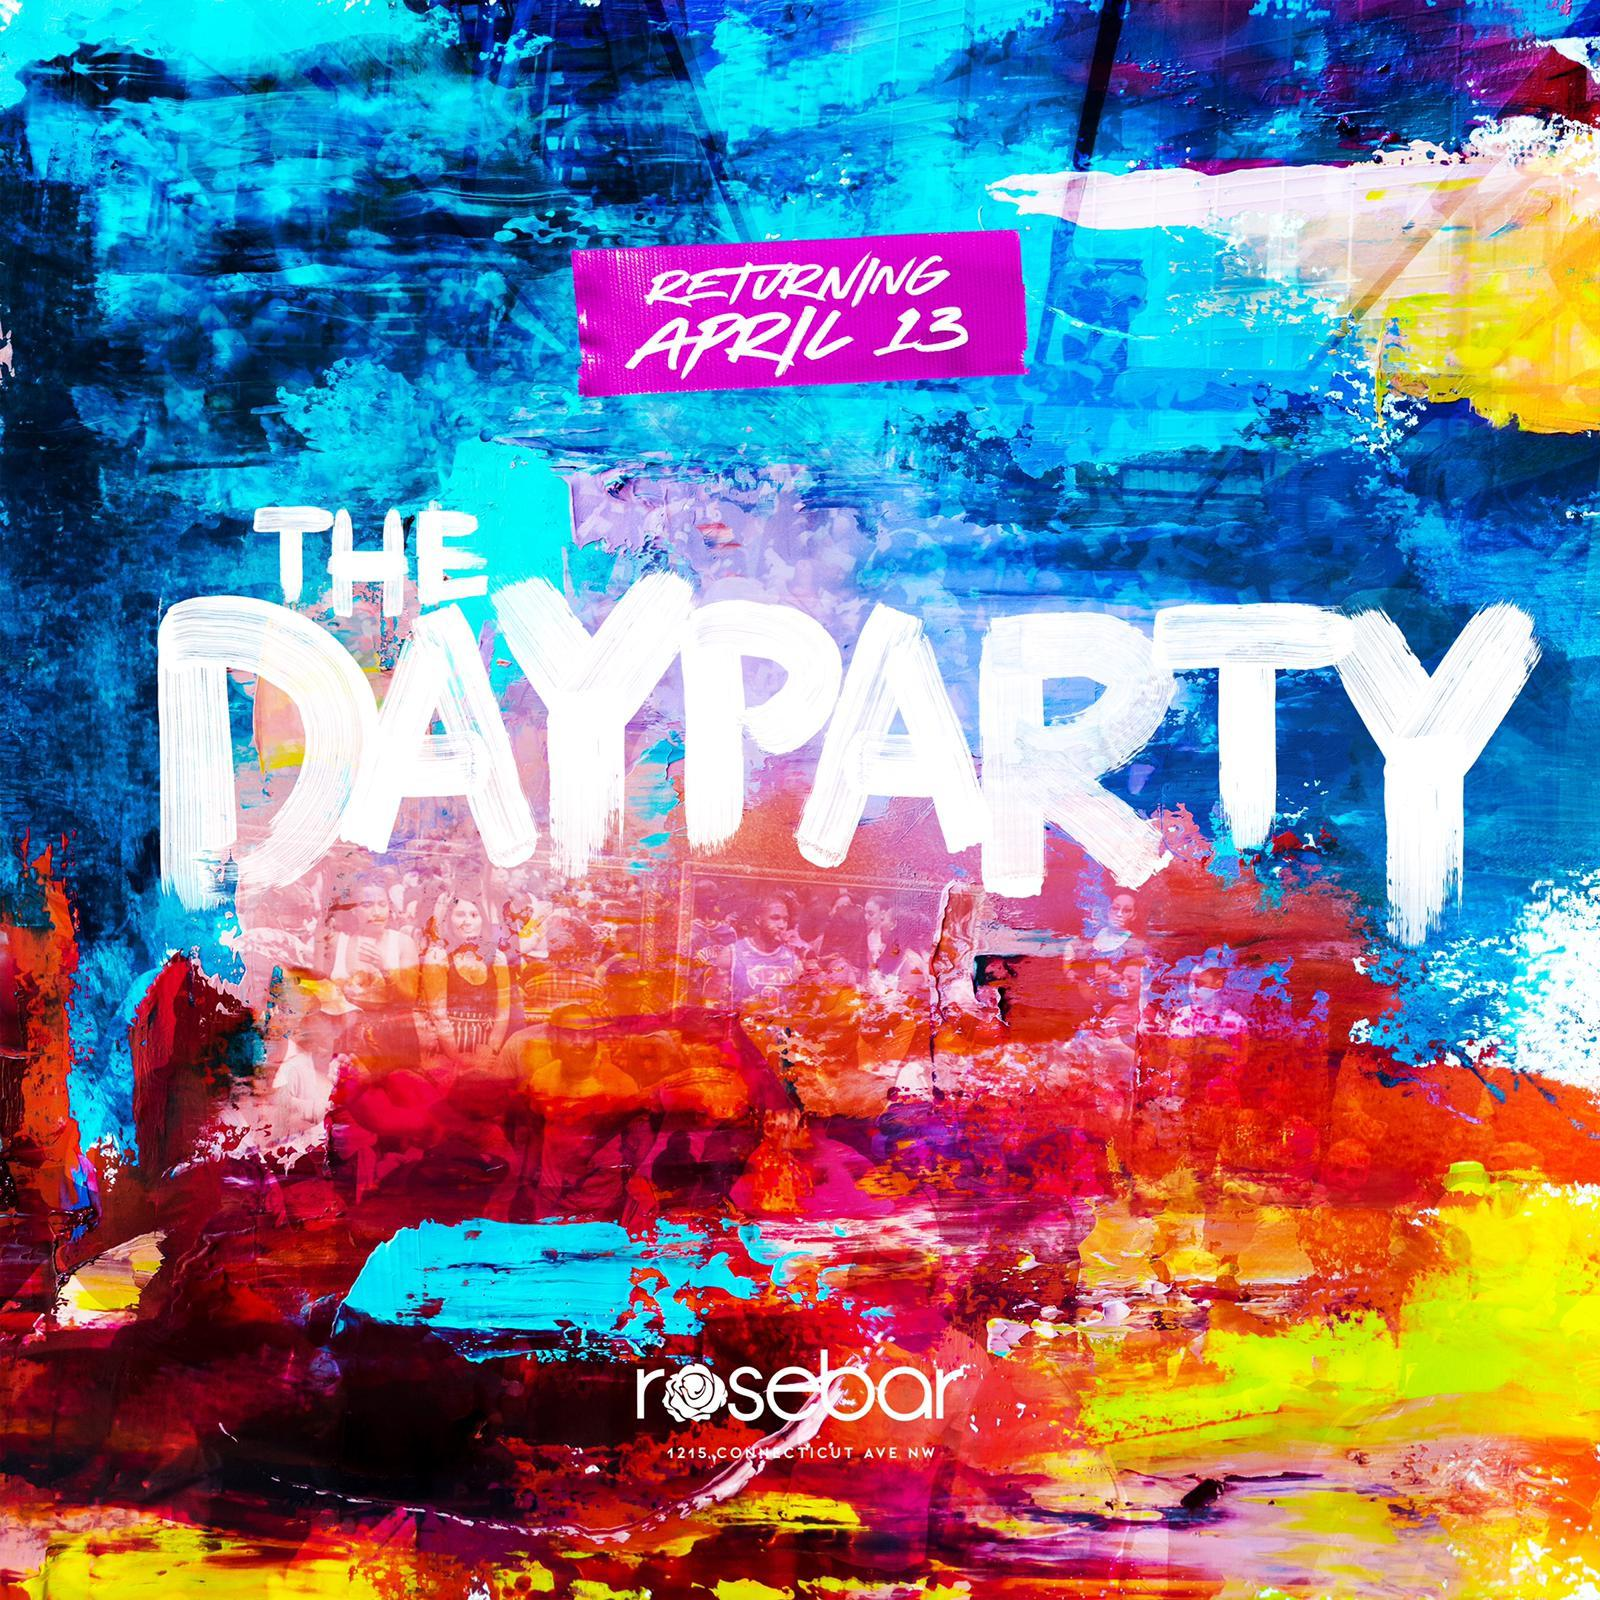 ROSEBAR DAY PARTY RETURNS